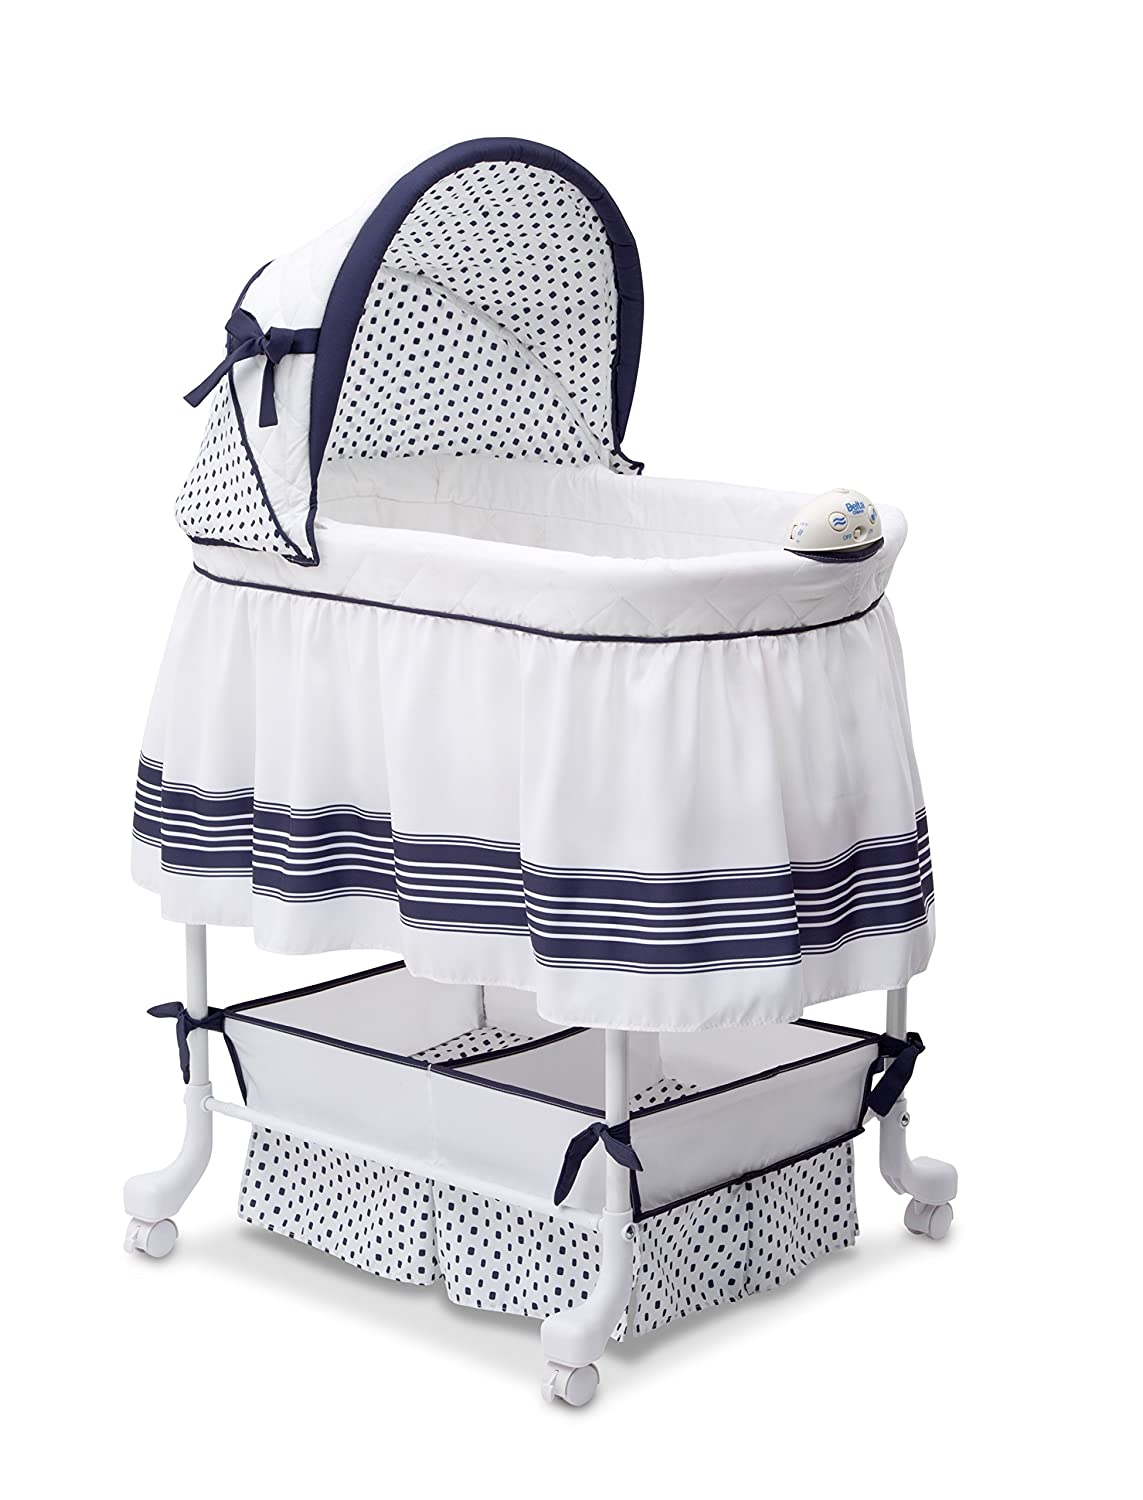 Delta Children Smooth Glide Bedside Bassinet - Portable Crib with Lights, Sounds and Vibrations, Marina